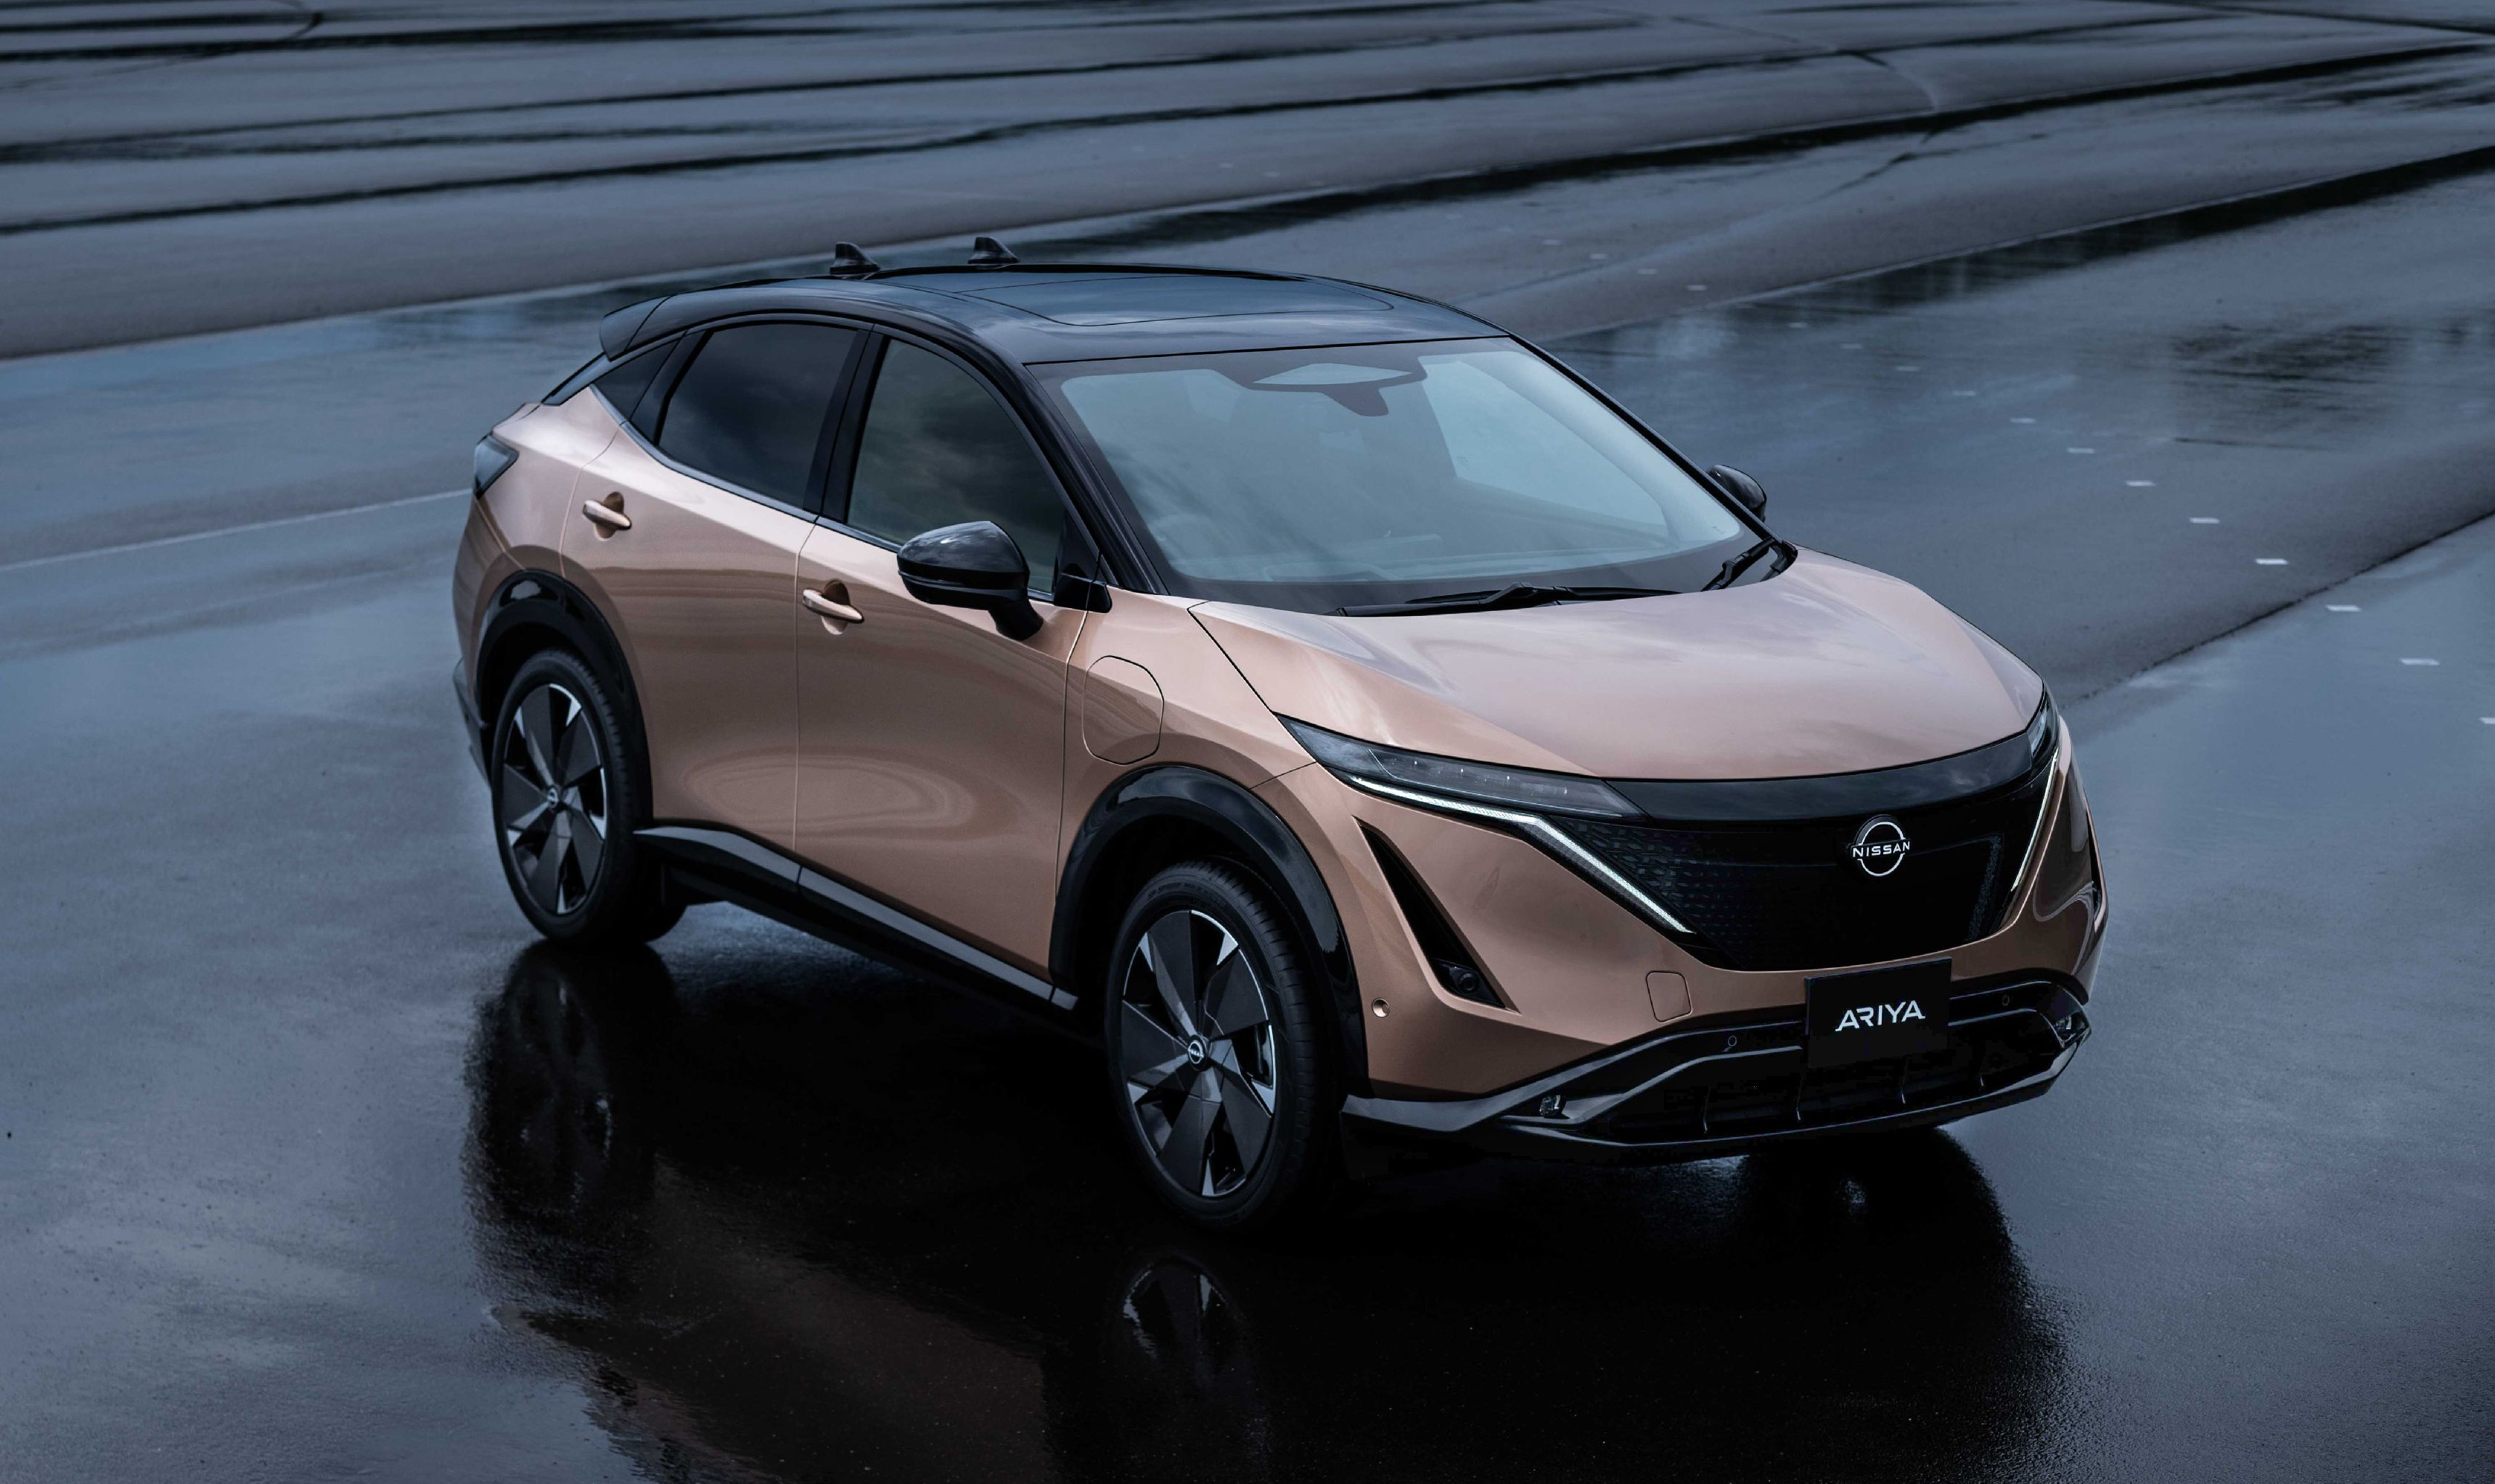 2021 Nissan Ariya Full Review And Specifications Top Speed In 2020 Electric Crossover Nissan Nissan Electric Car